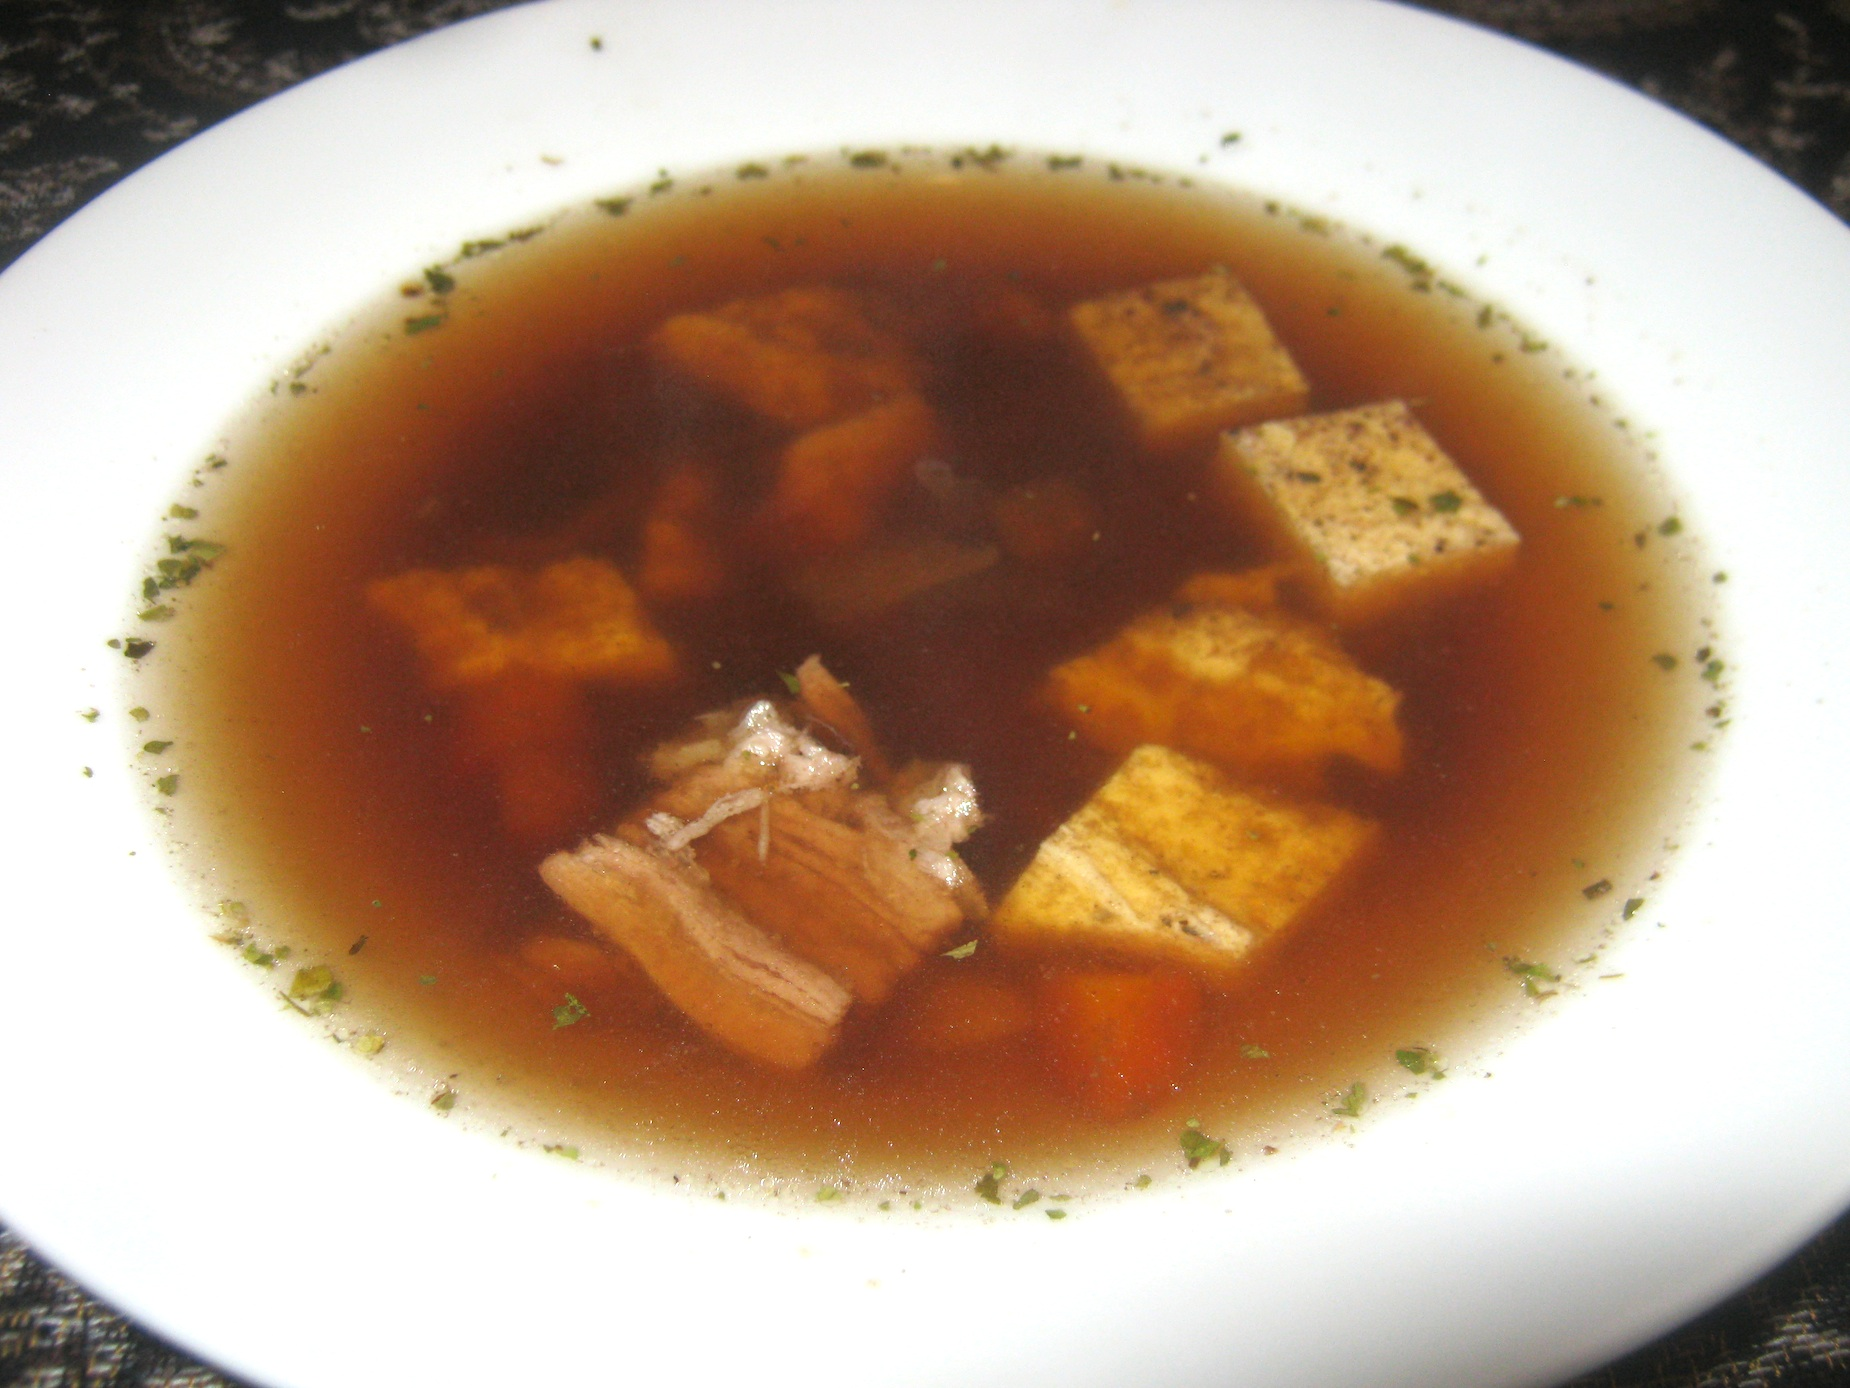 Clear Beef broth with Eierstich